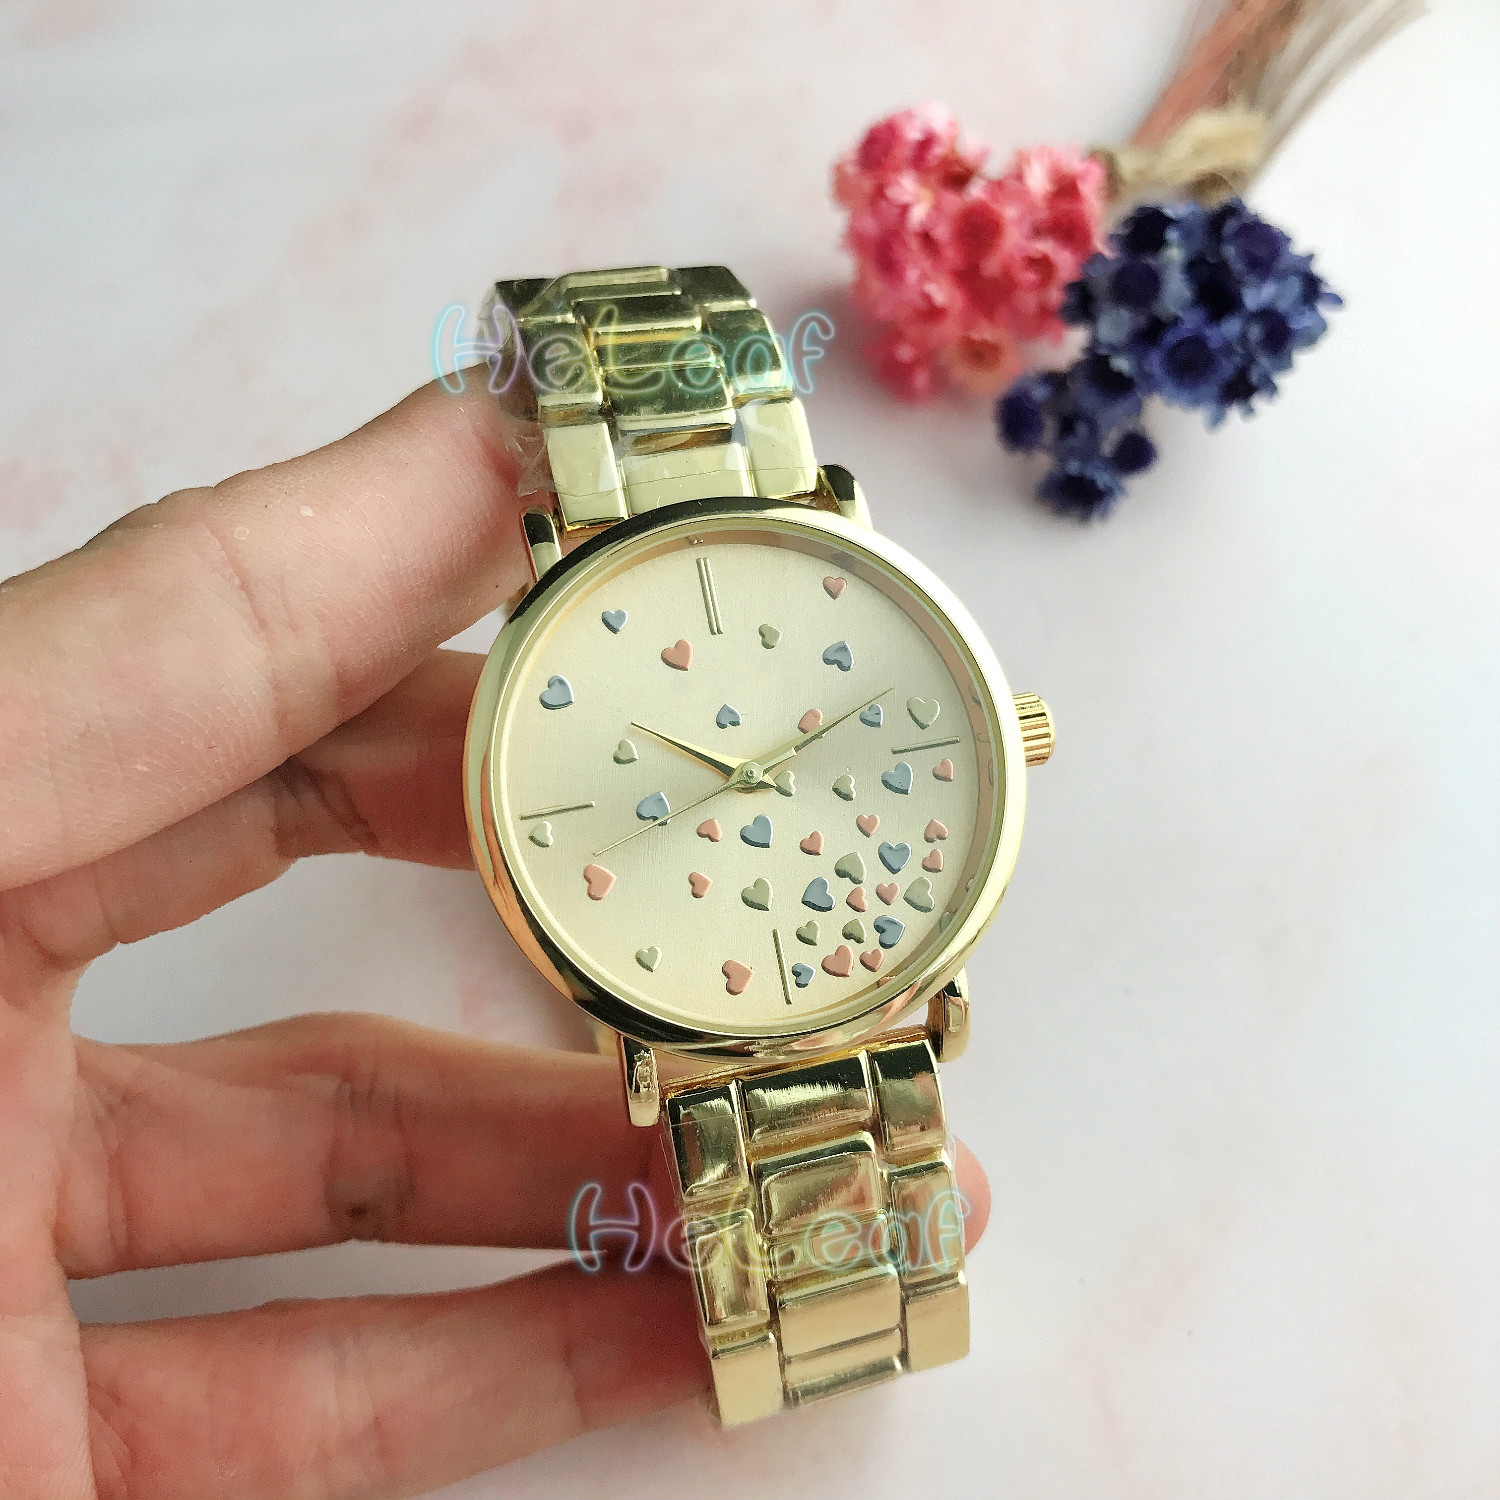 Luxury Brand Stars Ladies Watches Hot Sale Lady Silver Gold Full Steel Quartz Watch Female Clock Montre Femme Relogio Feminino